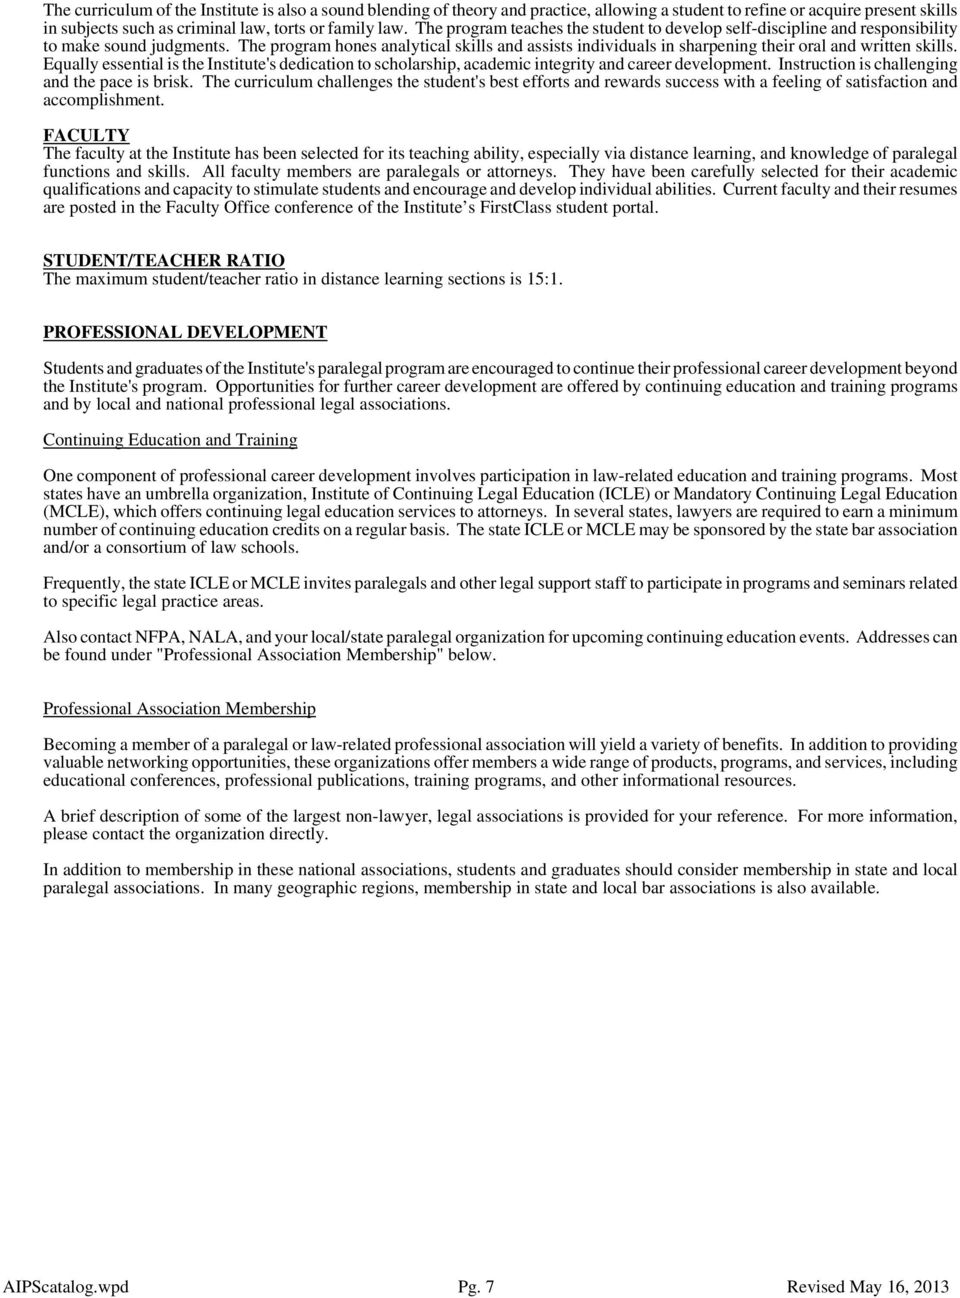 prosecutor resume example legal resume examples commercial law attorney resume. Resume Example. Resume CV Cover Letter